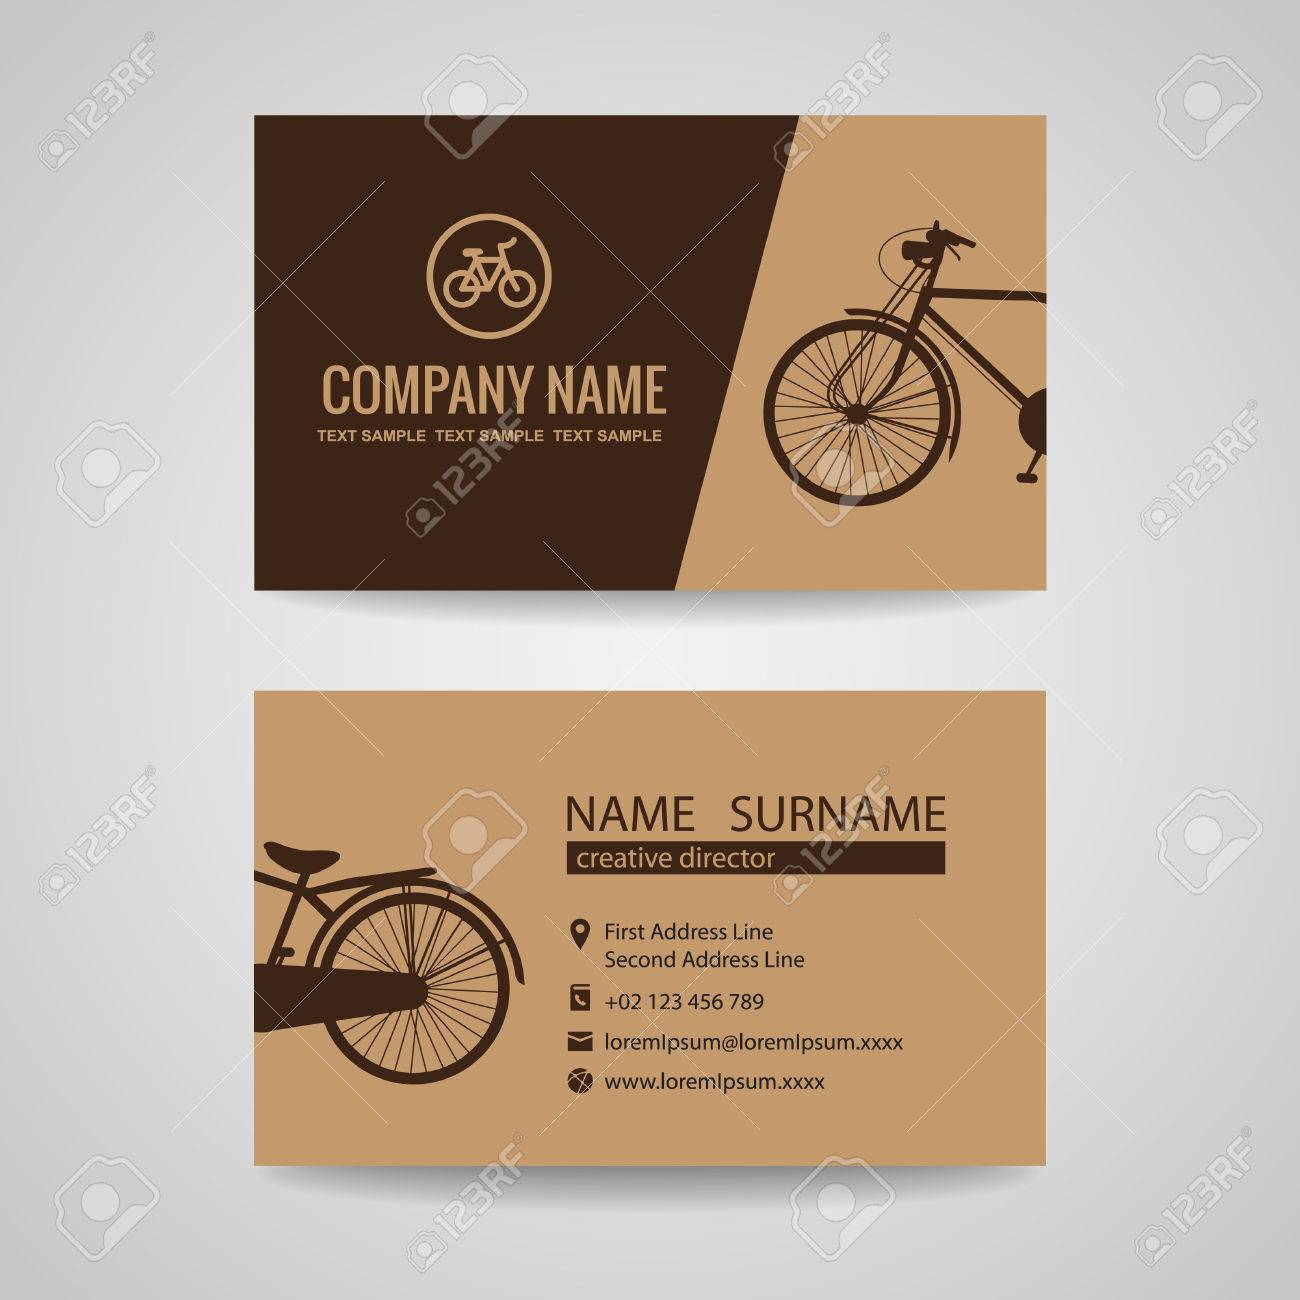 Business Card For Old Vintage Bicycle Shop Or About The Bike Royalty ...